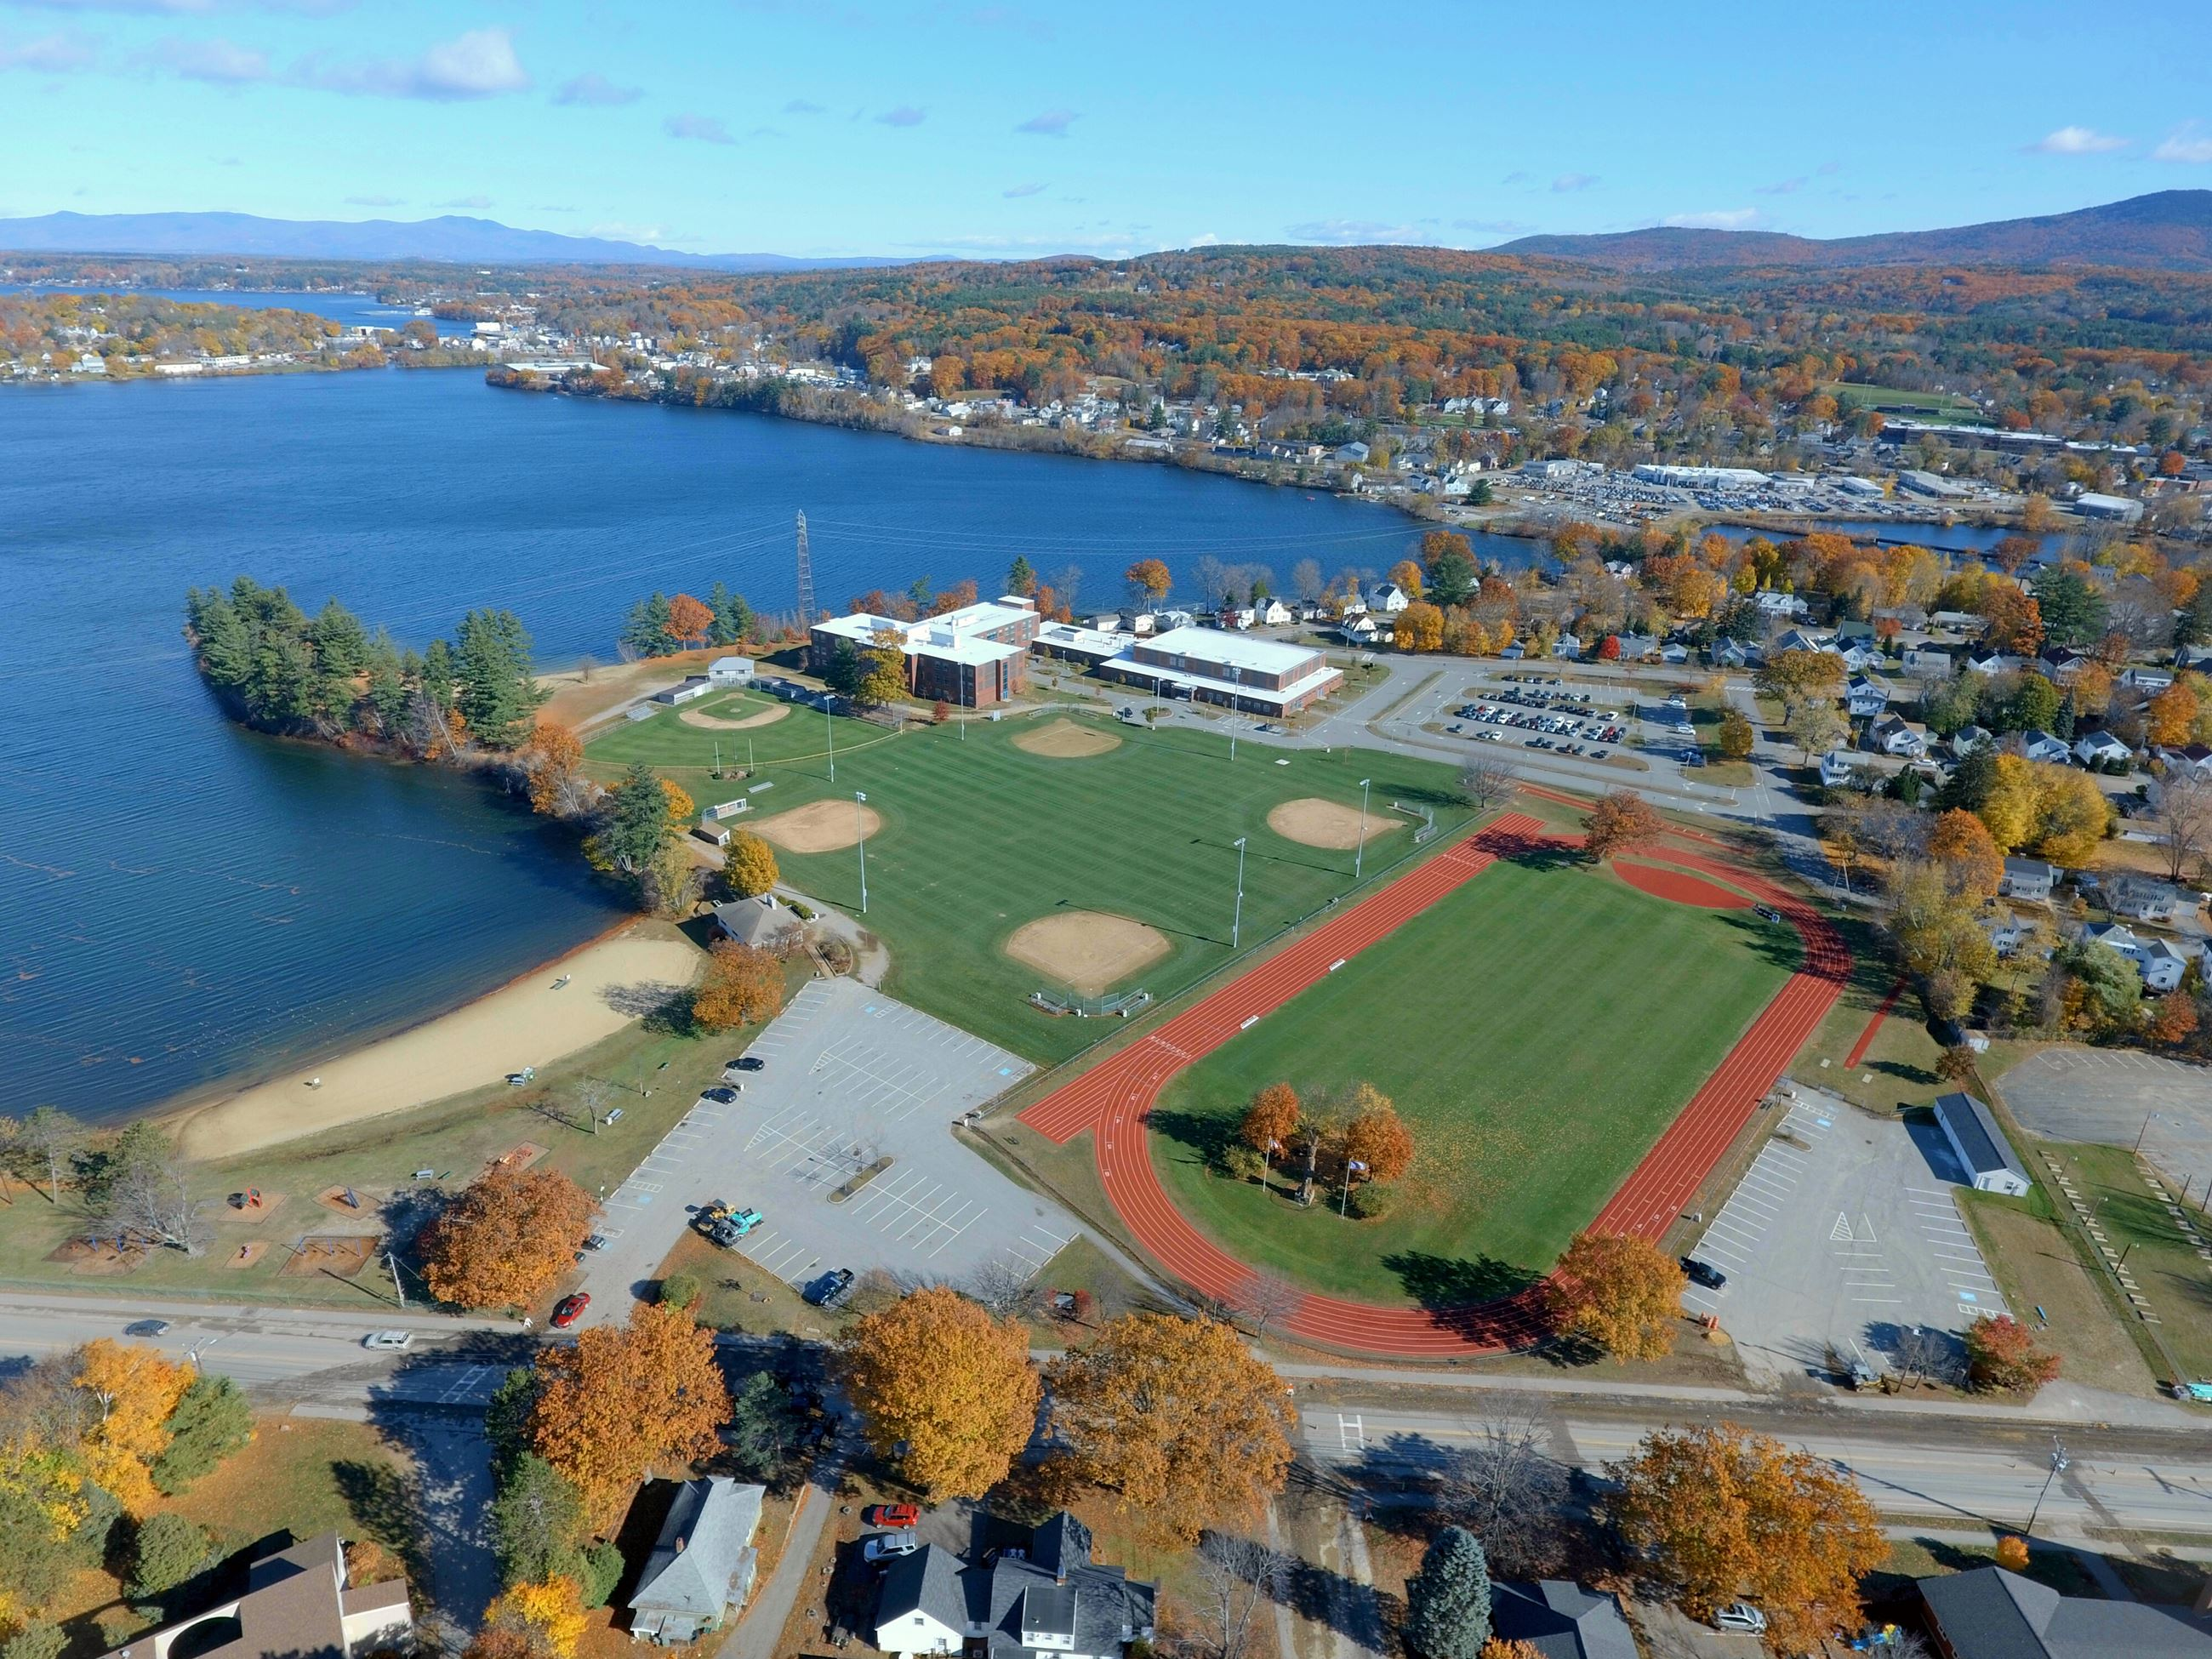 Overhead view of Opechee Park - photo compliments of Allan Luther